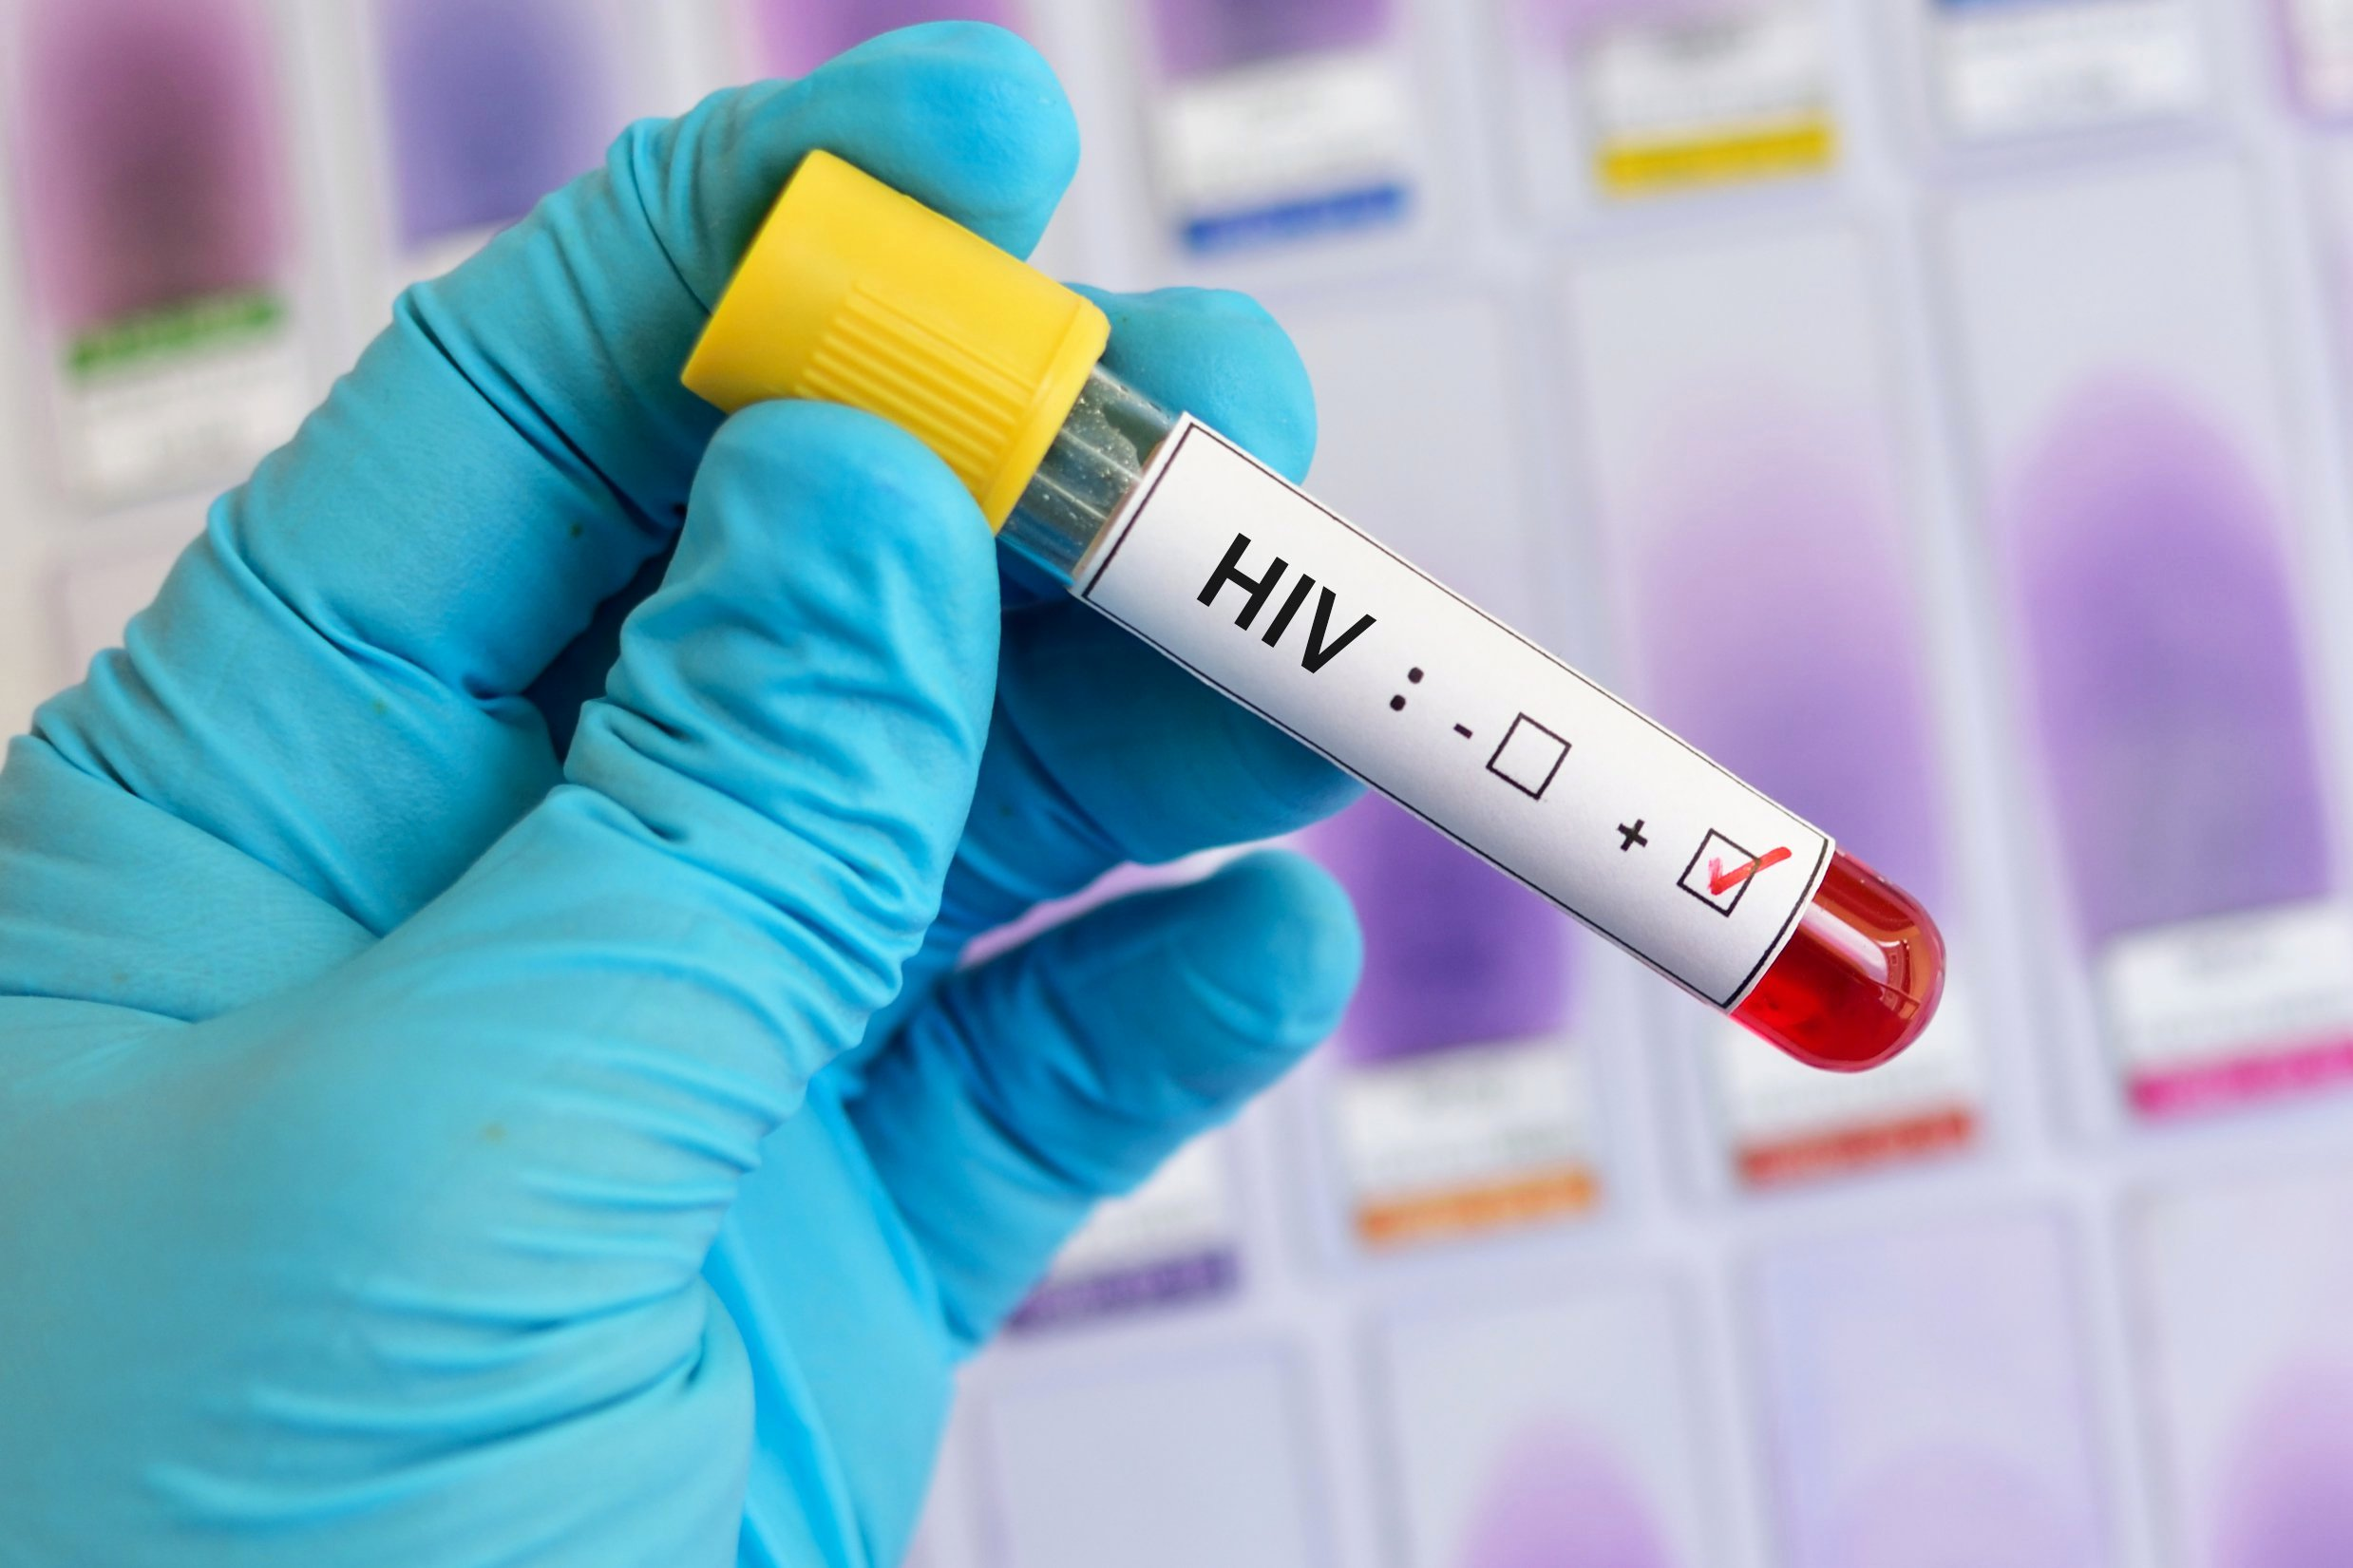 HIV AIDS Cure based on Diagnostics